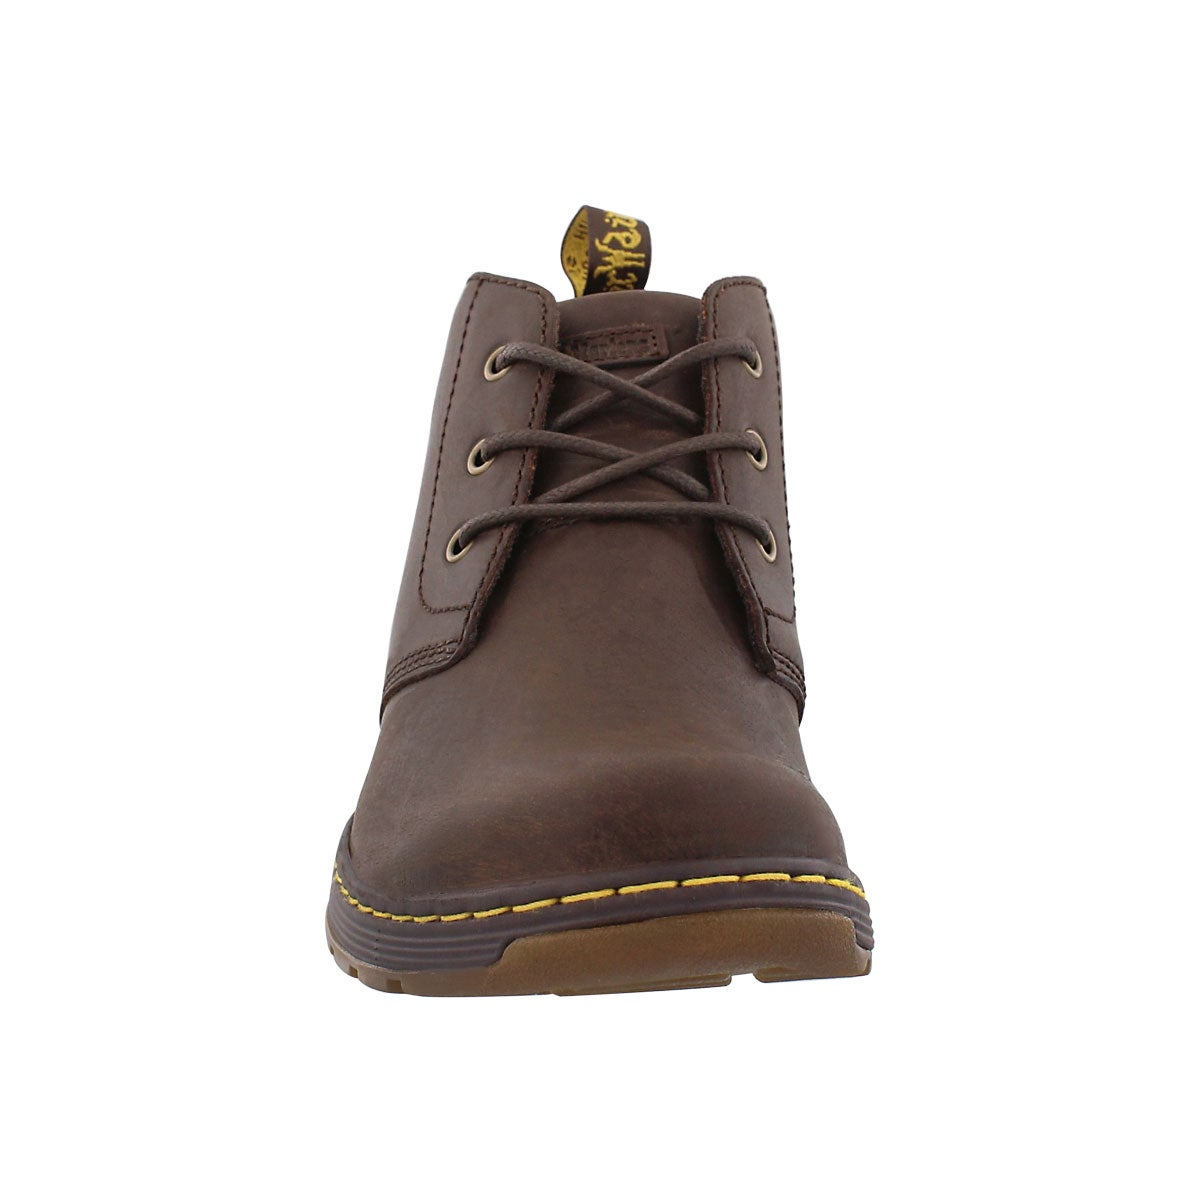 Mns Emil brown oily lthr chukka boot